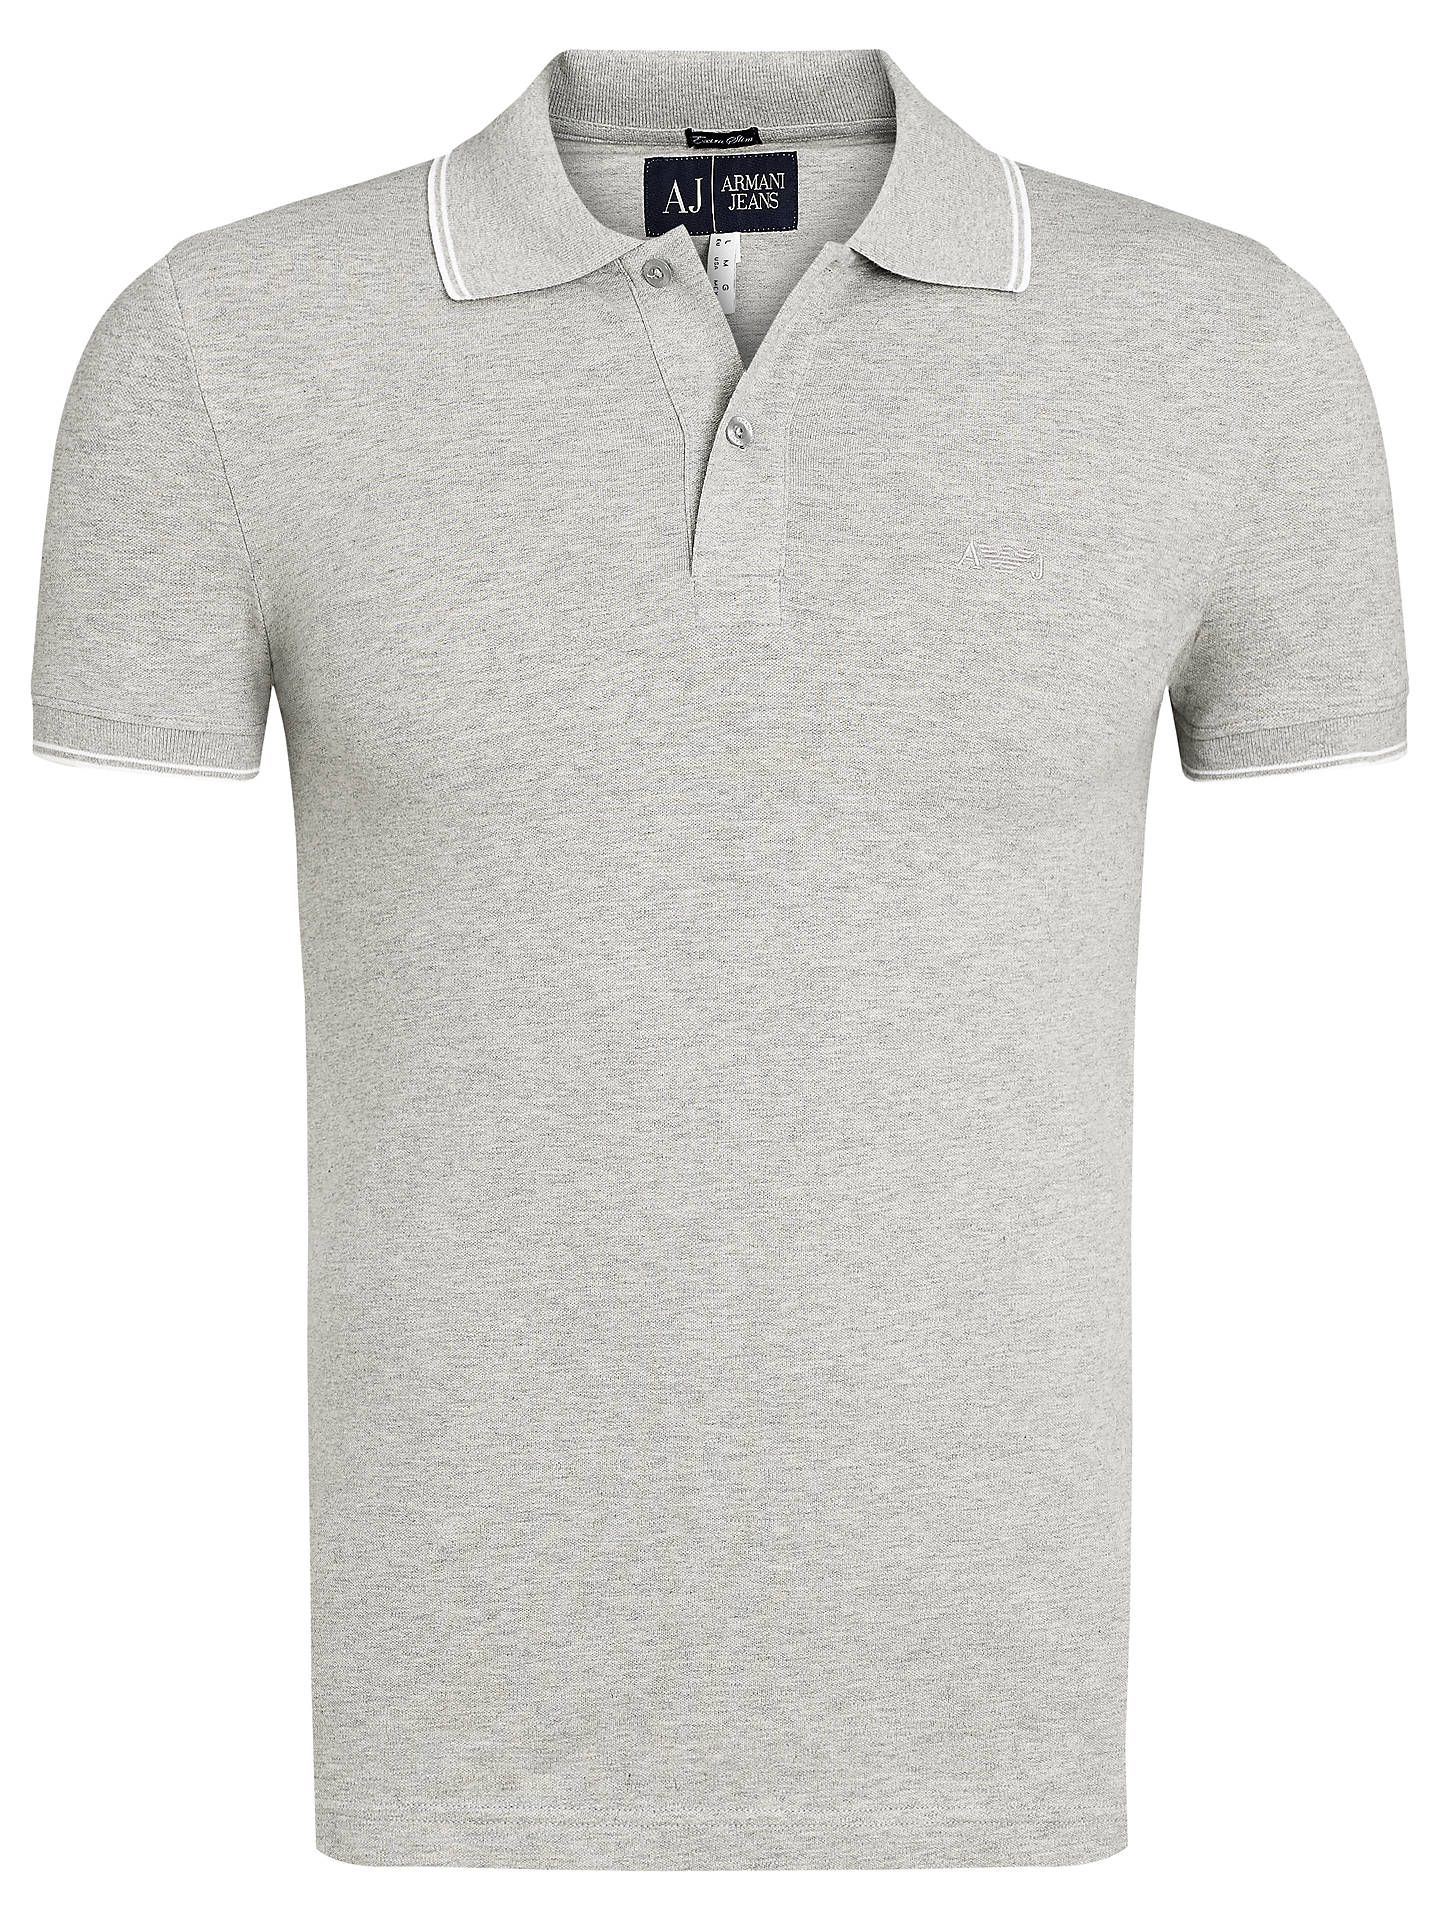 4bf87526 Buy Armani Jeans Tipped Collar Polo Shirt, Grey, XXL Online at  johnlewis.com ...